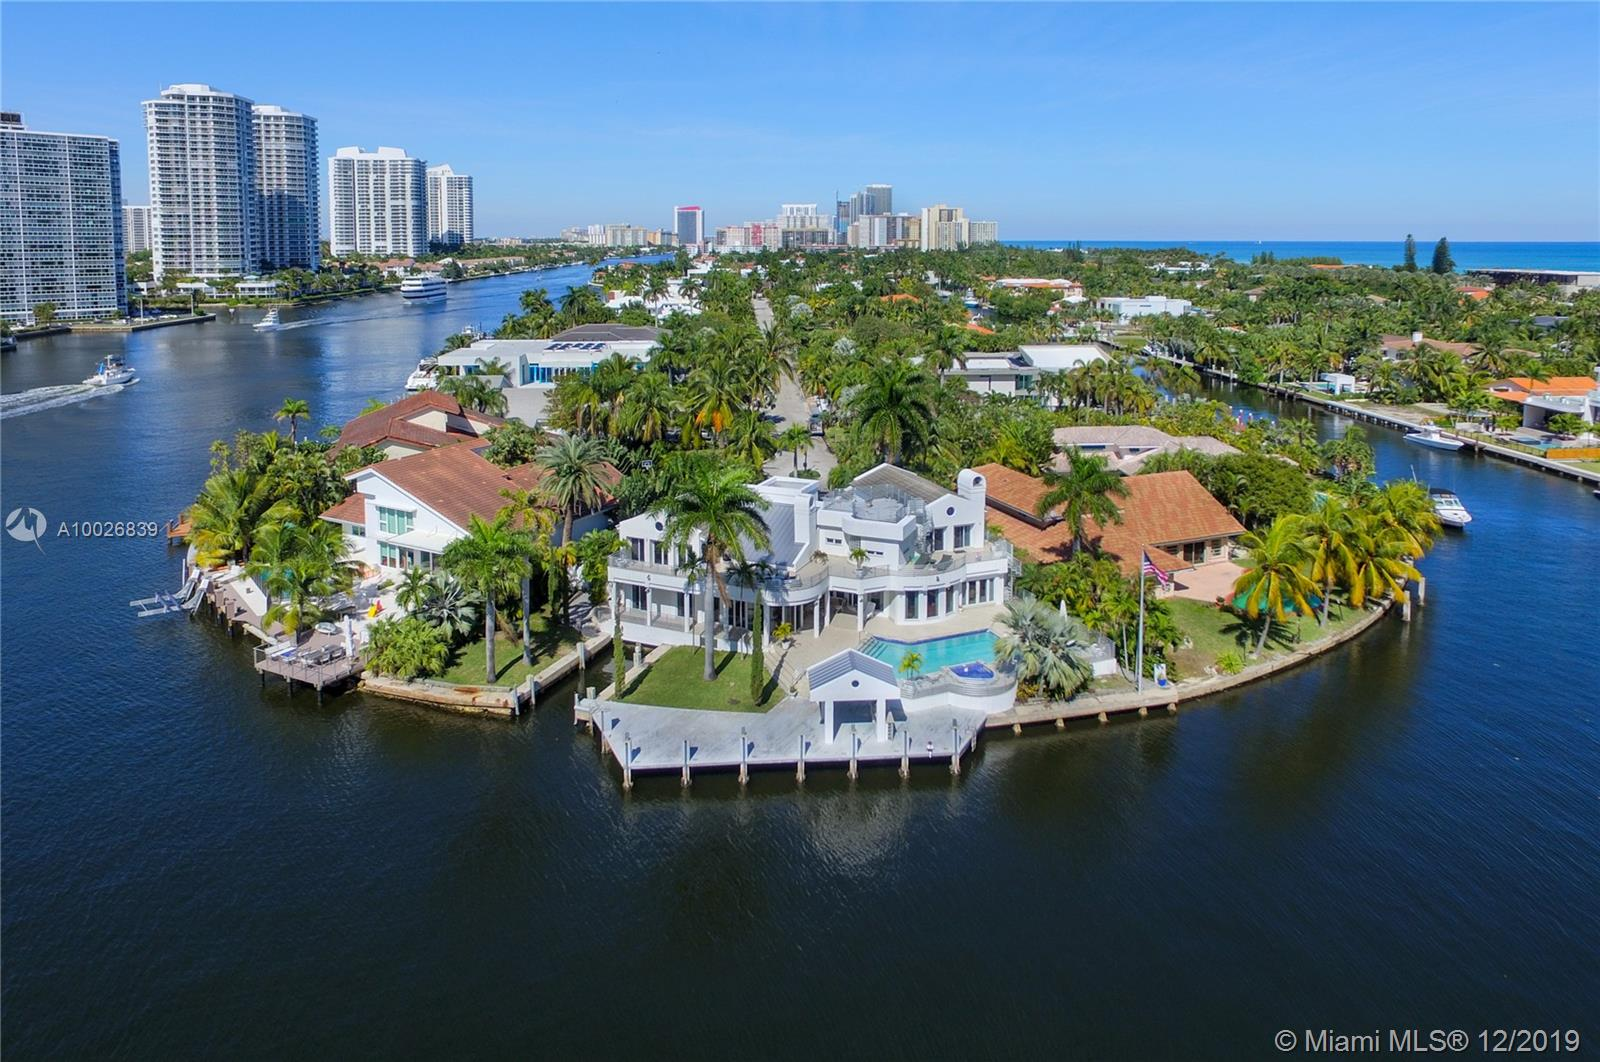 349 Center Island Dr. Luxury Real Estate